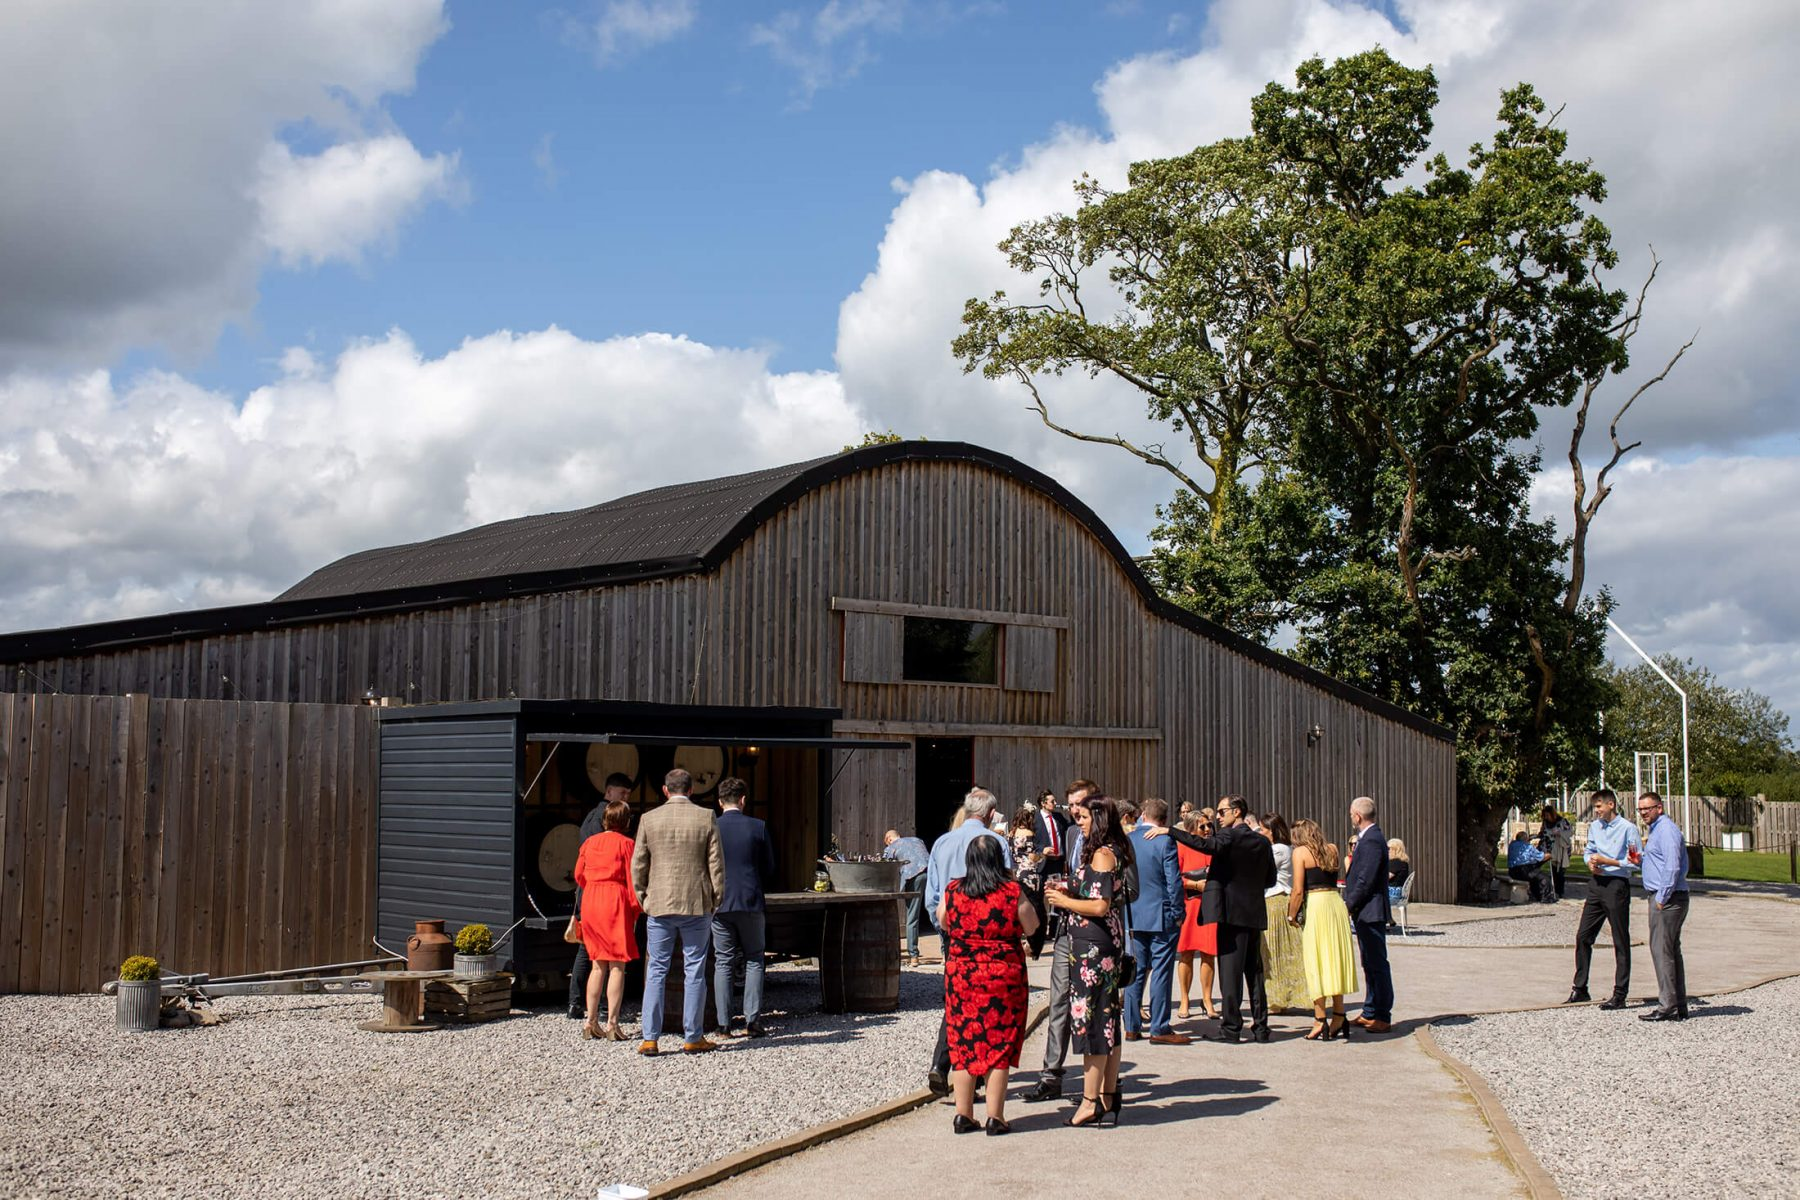 Guests gather outside Alcumlow Barn